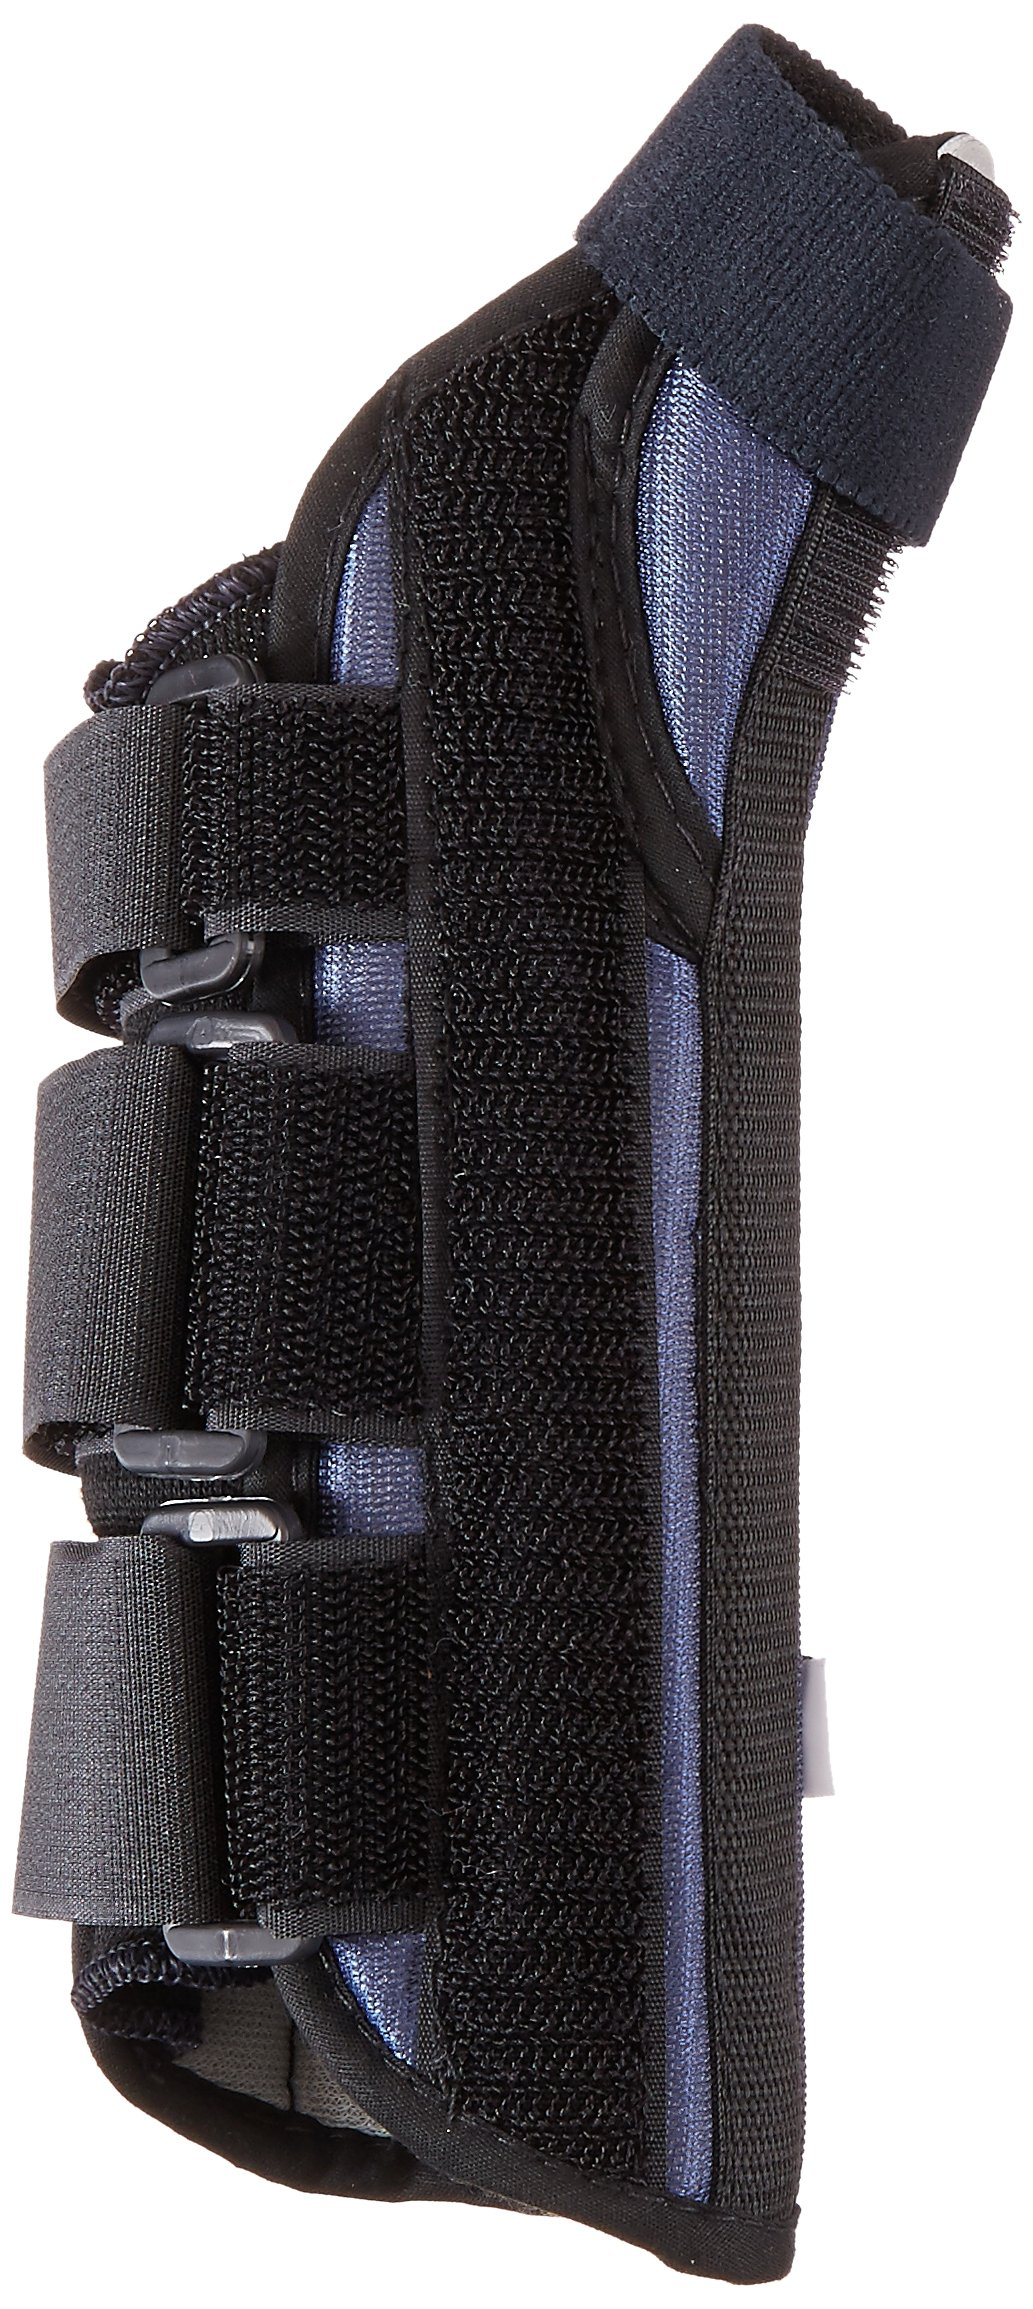 Sammons Preston Thumb Spica Wrist Brace, MC and CMC Joint Support and Stabilizer, Secure Brace and Splint for Thumb with Open Finger, Splint for Recovery, Therapy, Rehabilitation, Left, Small